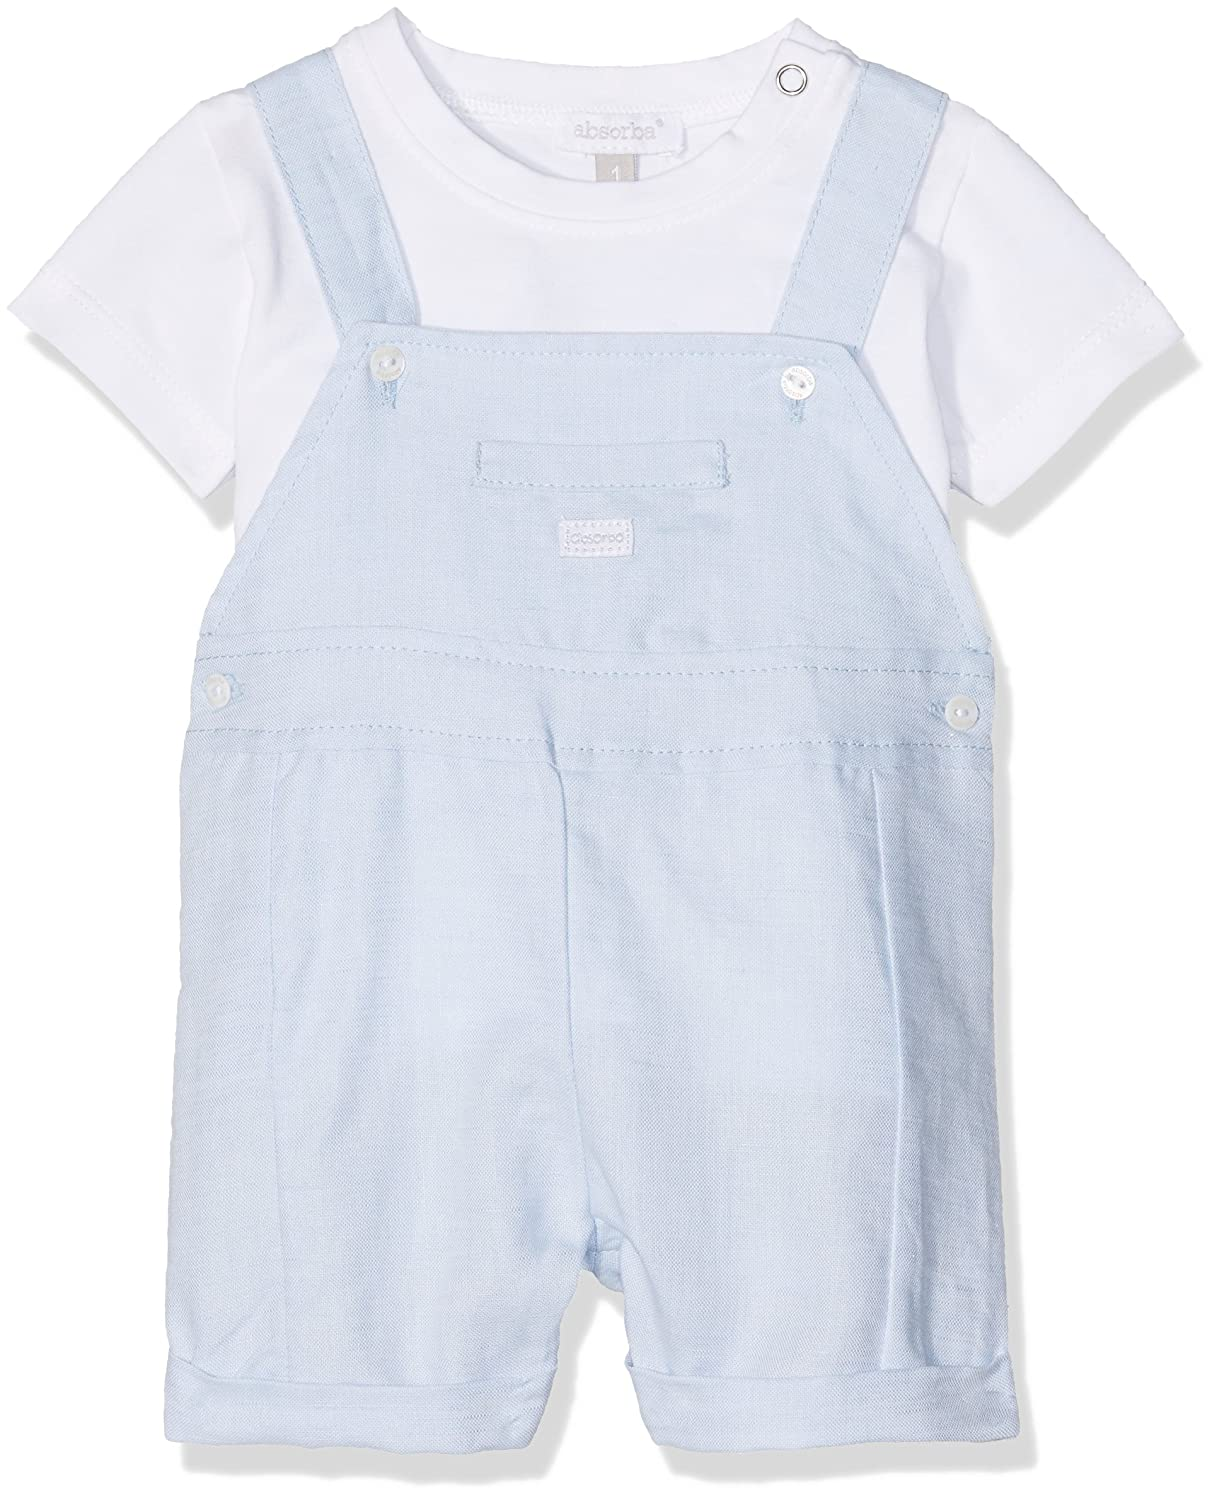 Absorba Baby Boys' Very Chic Lg Clothing Set Blue (Ciel) FR (Size: 6 Months) Absorba Boutique 9J37062